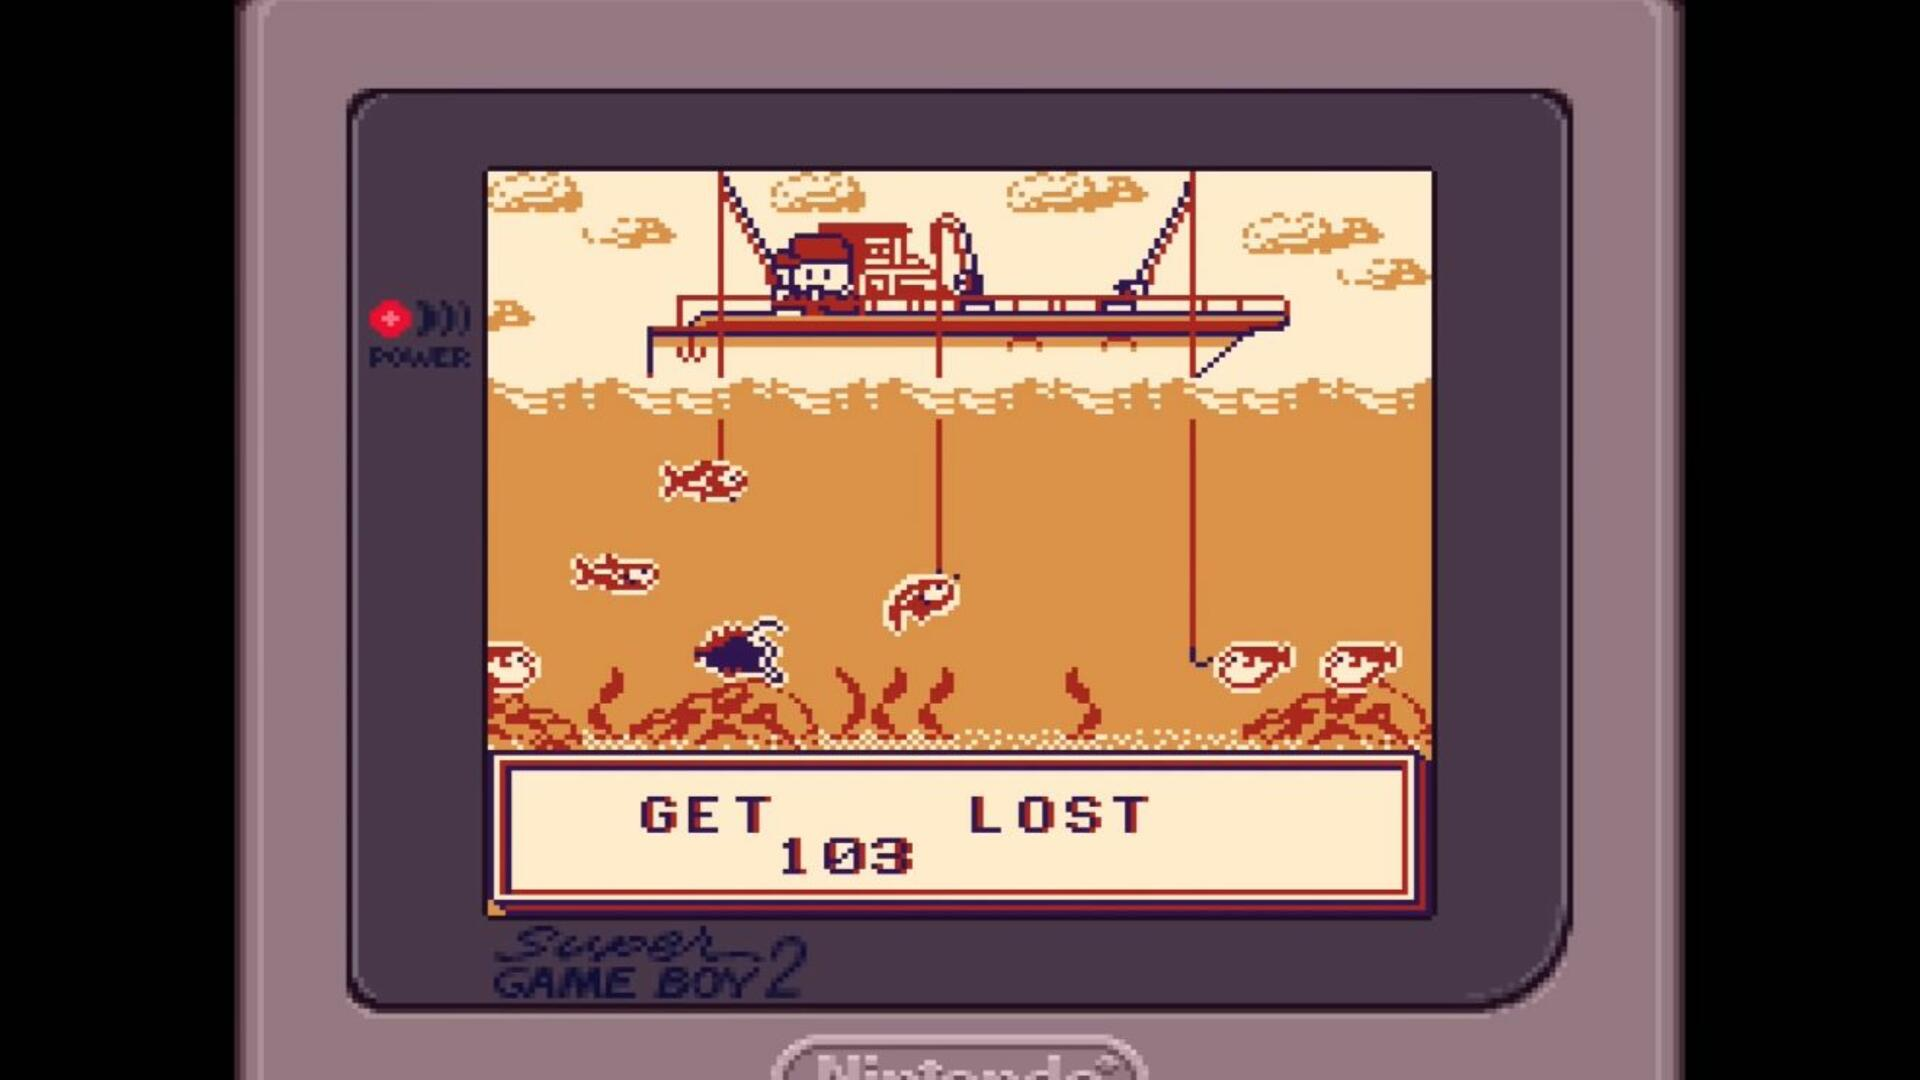 You Can Catch Fish With the Game Boy's Weirdest Accessory